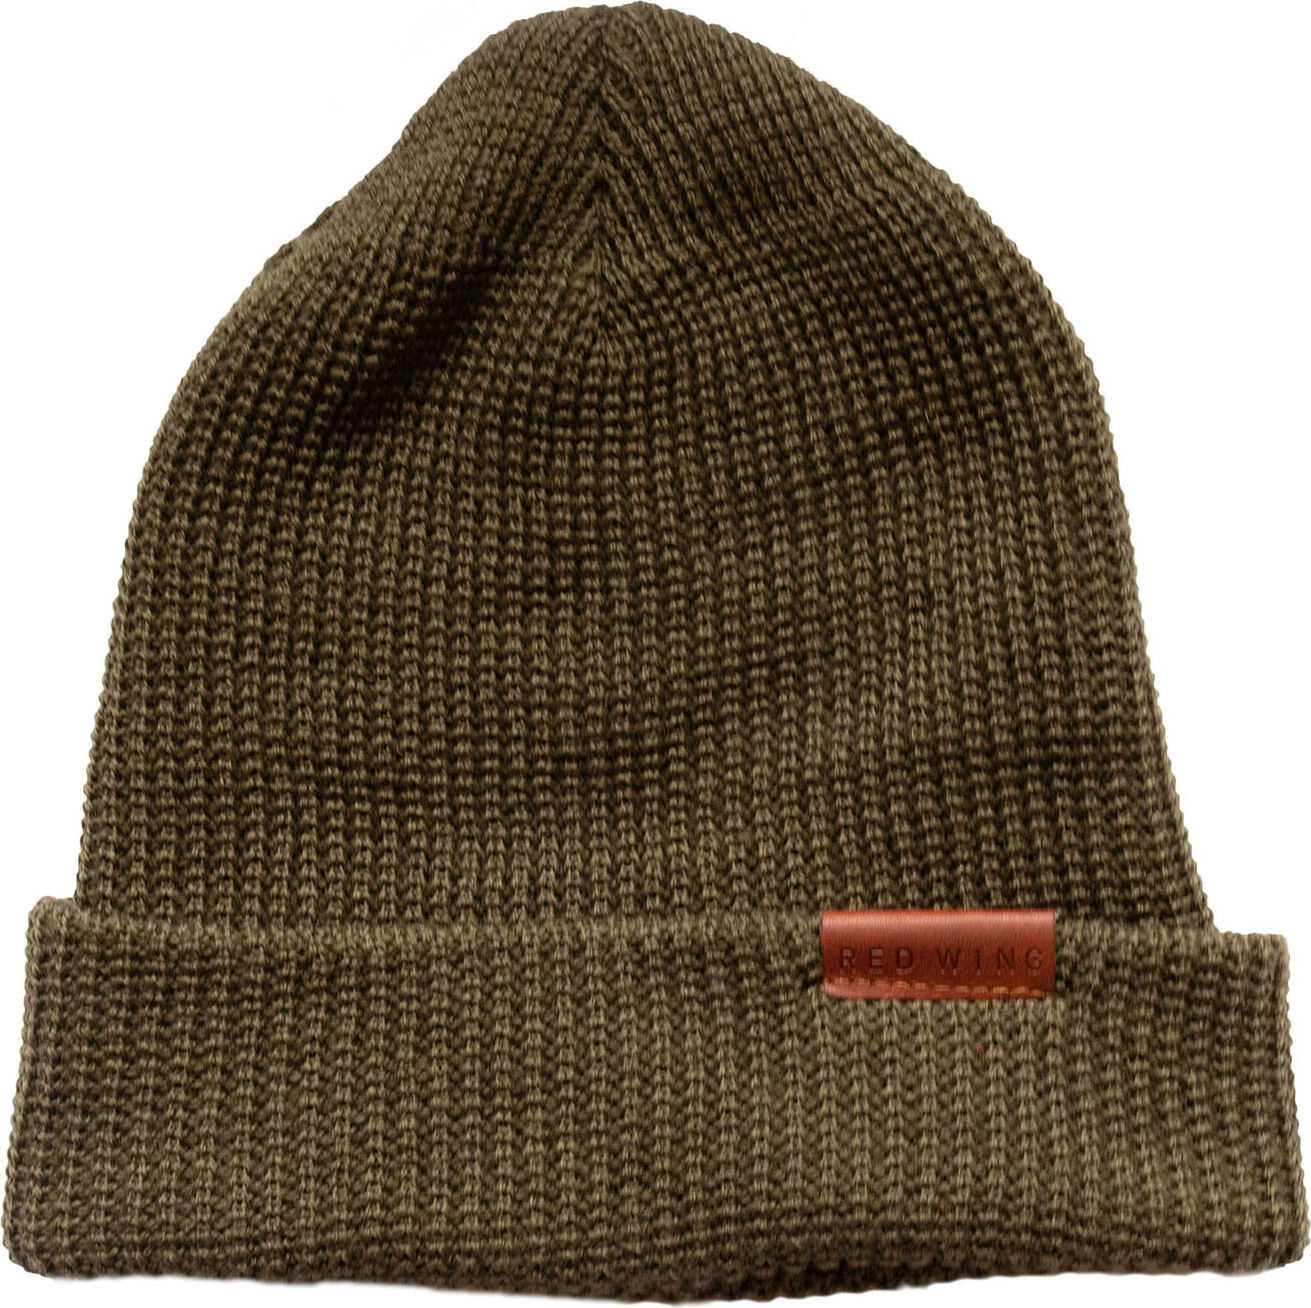 Red Wing Beanie Hat In Olive Olive